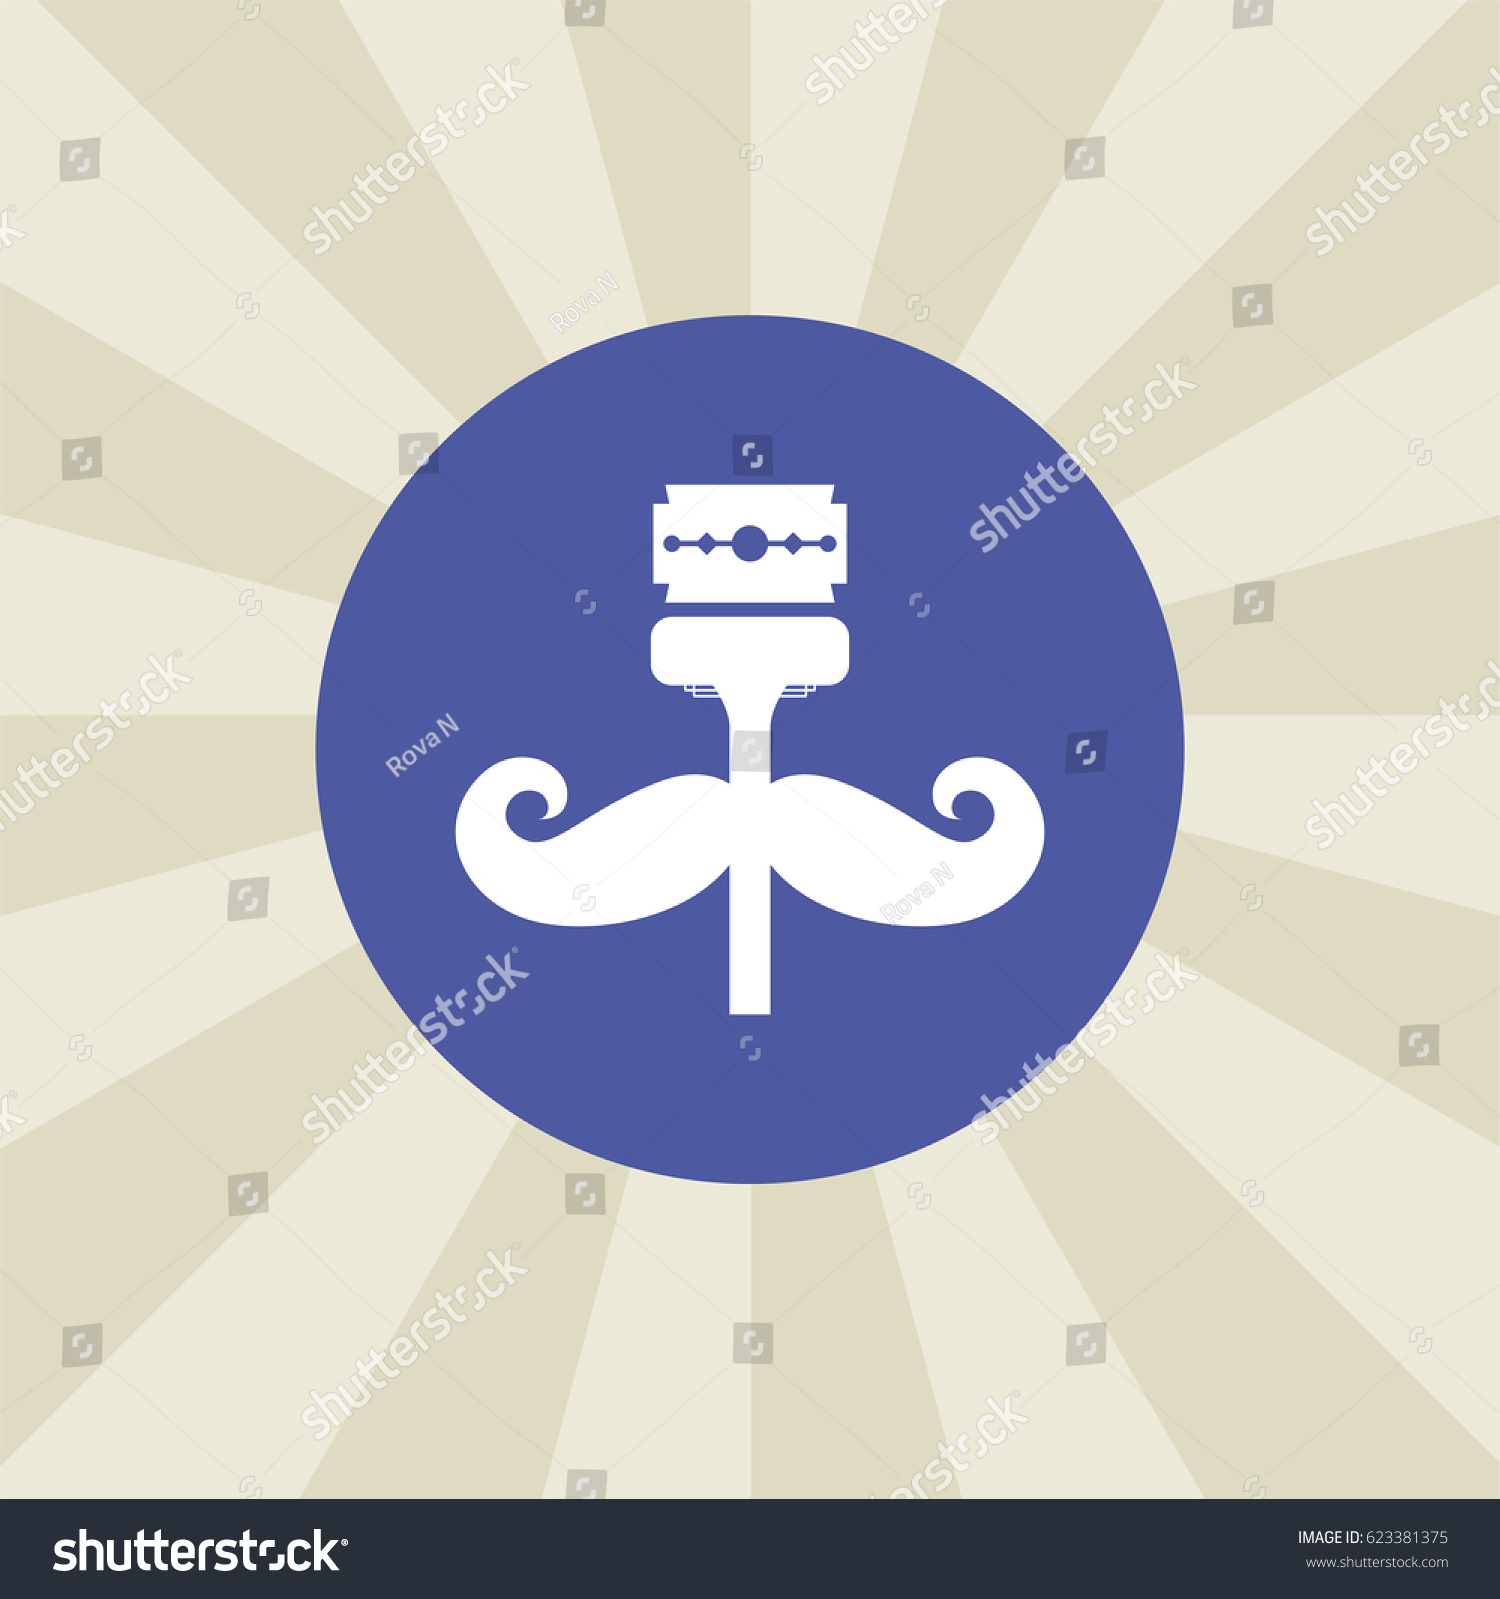 Gillette Icon Sign Design Background Stock Vector (Royalty